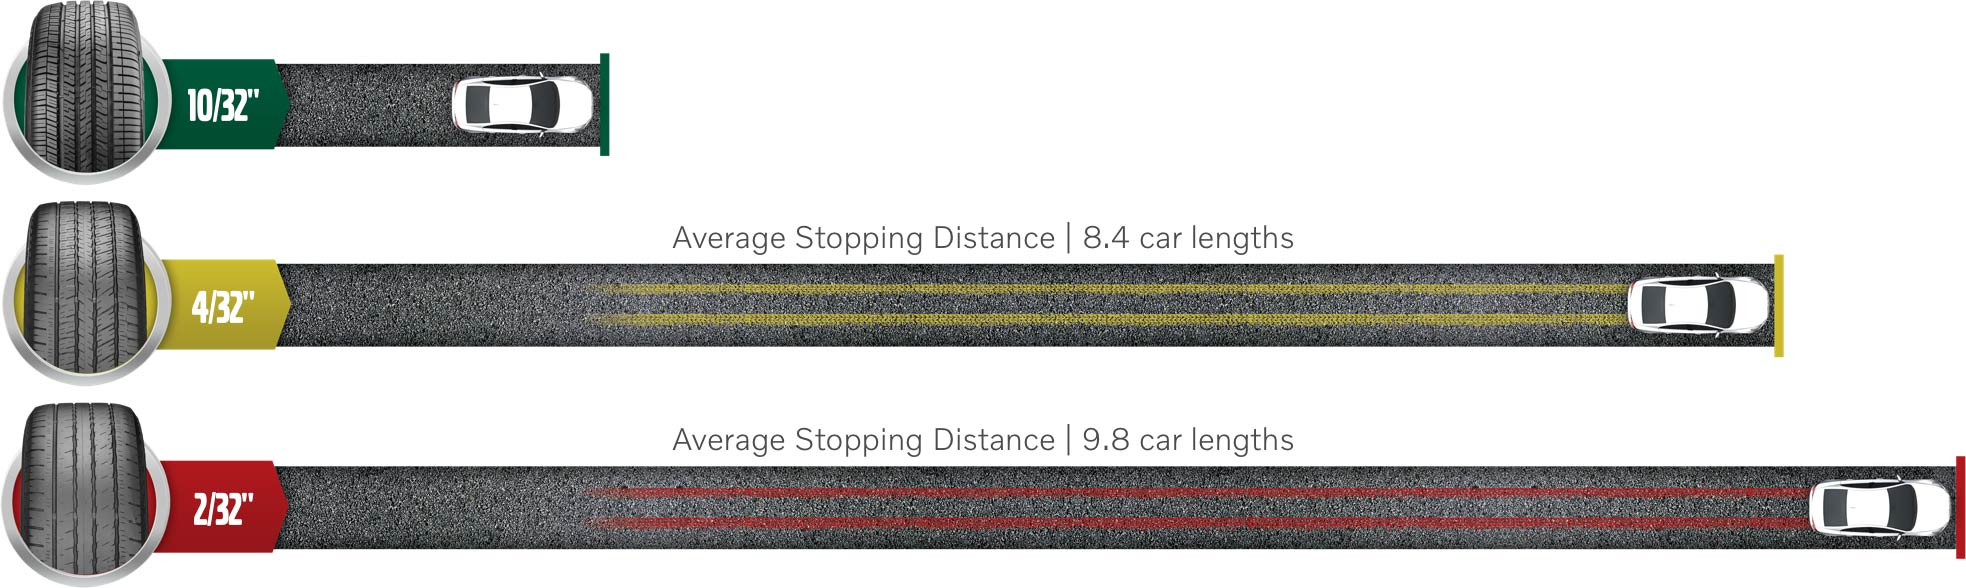 Image demonstrating the difference in stopping distance between old tires and new tires. New tires stop much sooner than tires that have been worn down